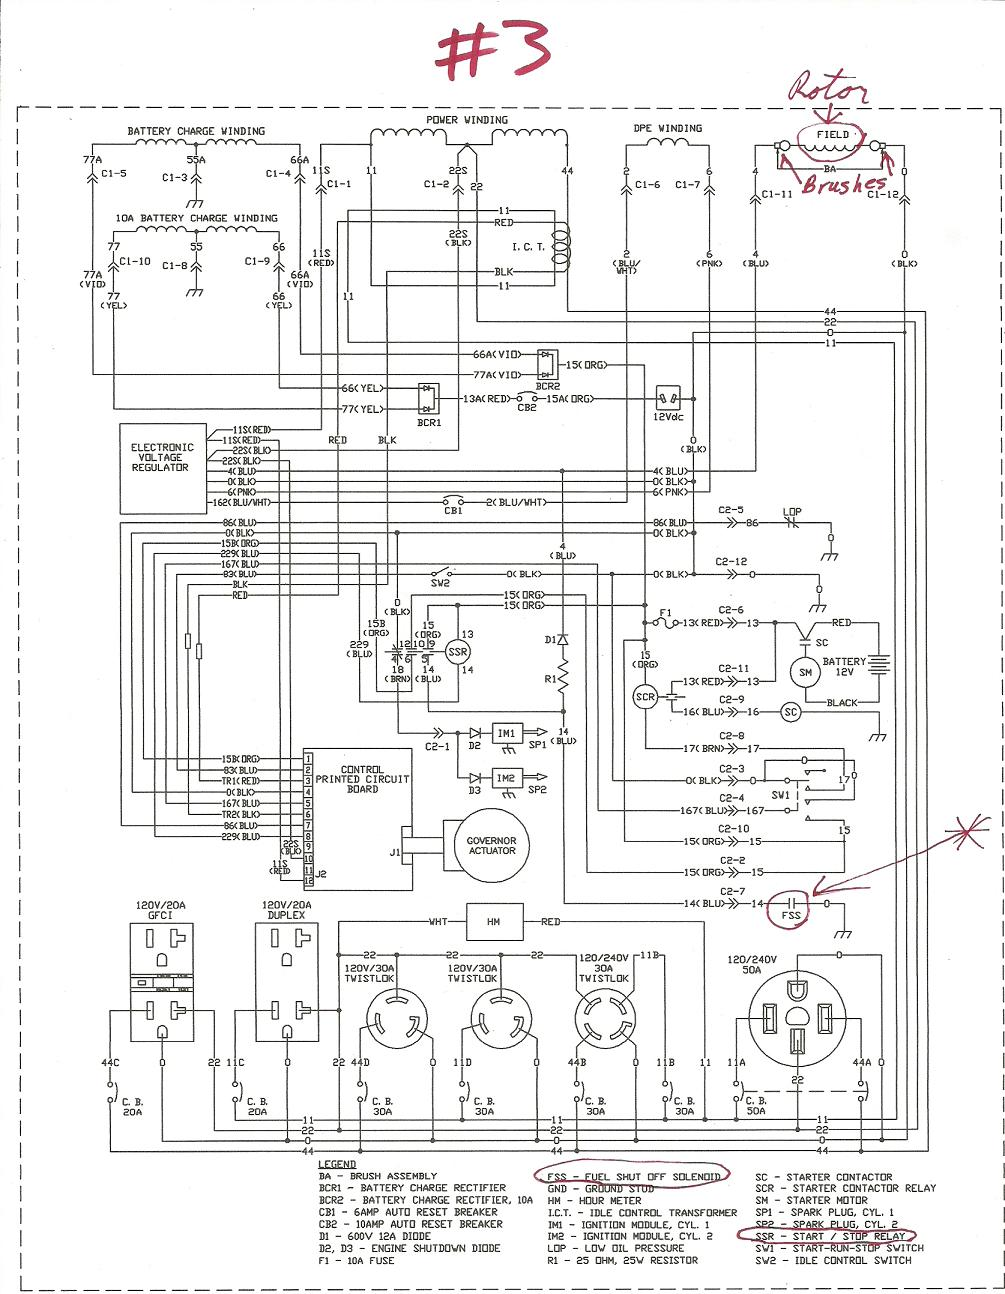 2010-01-26_155640_number10003  Wire Schematic Diagram on volt 20 amp outlet wiring, volt transformer wiring, volt 4 wire plug wiring, volt switch wiring, volt breaker wiring, circuit breaker wiring, volt well pump wiring, breaker wiring, baseboard heater wiring,